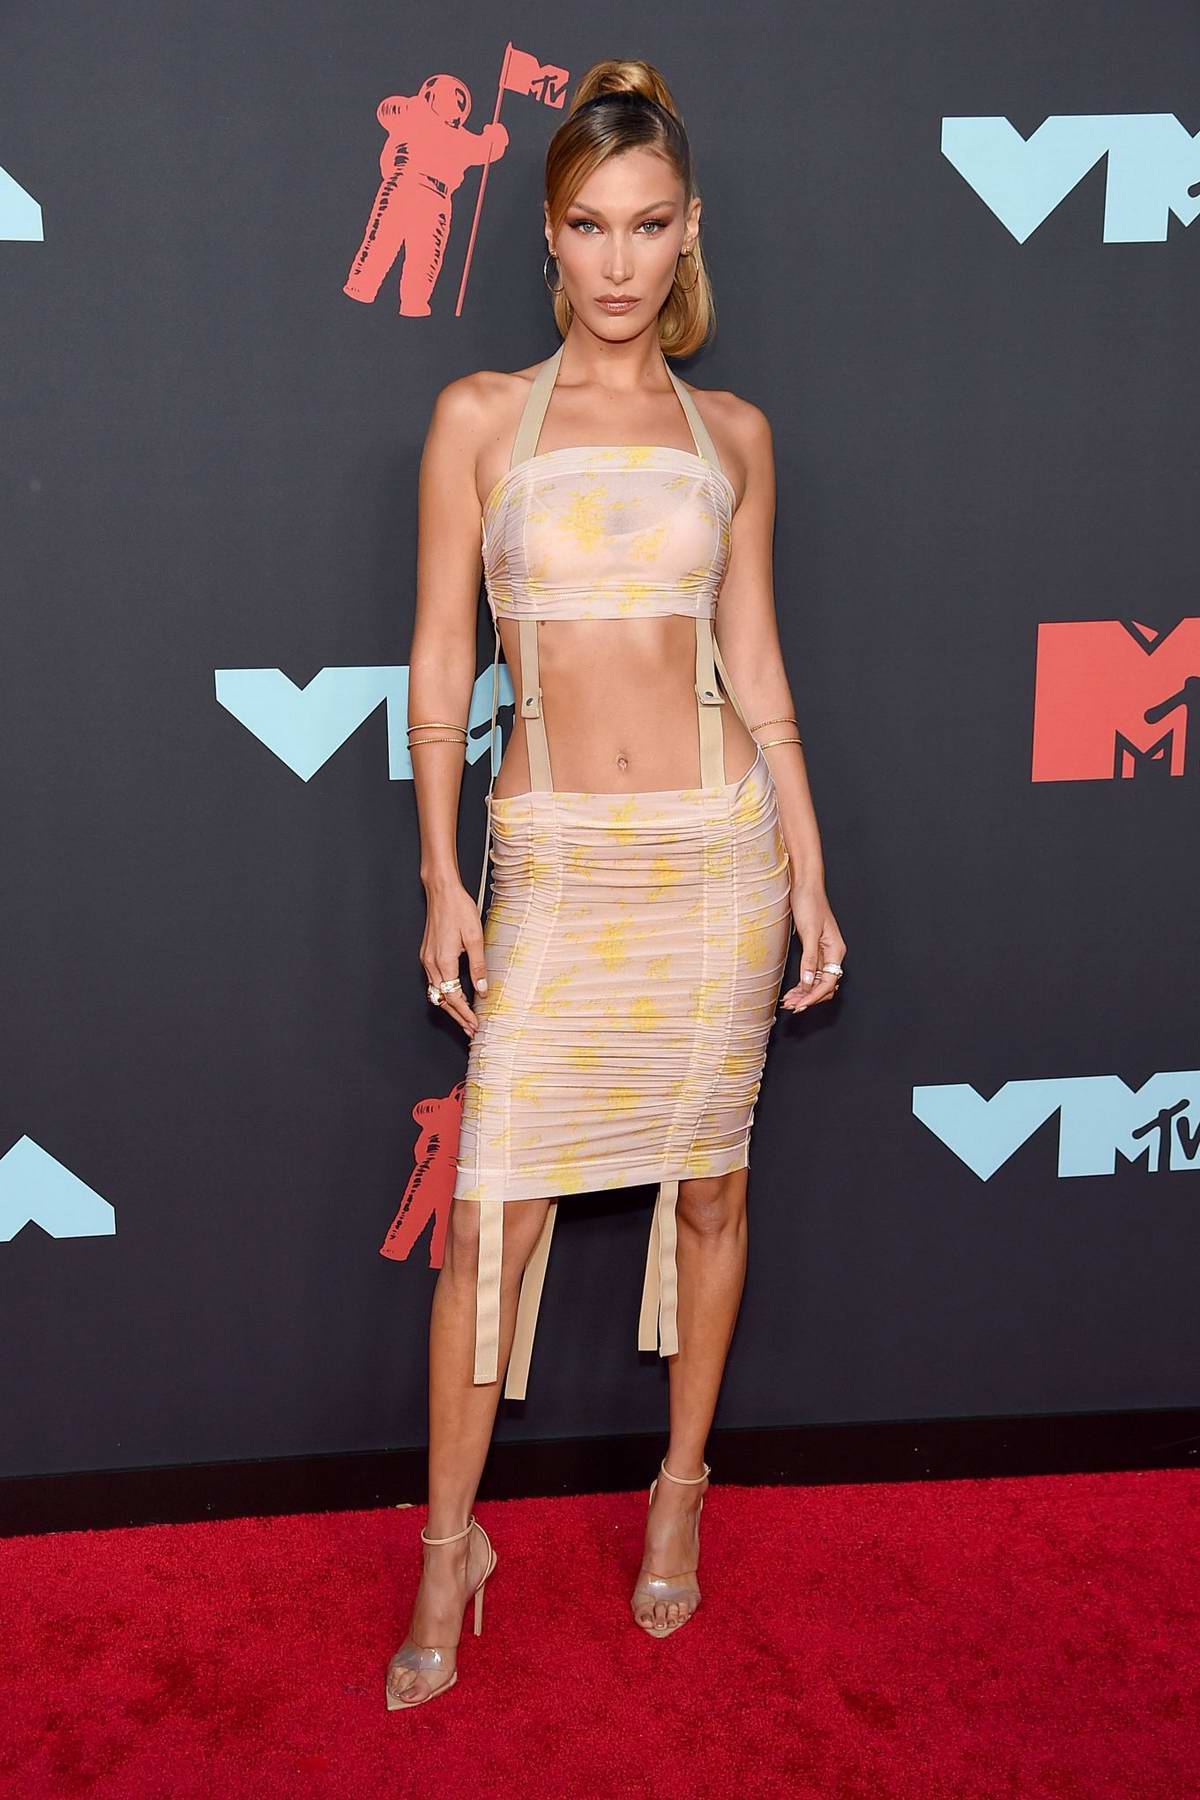 Bella Hadid attends the 2019 MTV Video Music Awards at Prudential Center in Newark, New Jersey